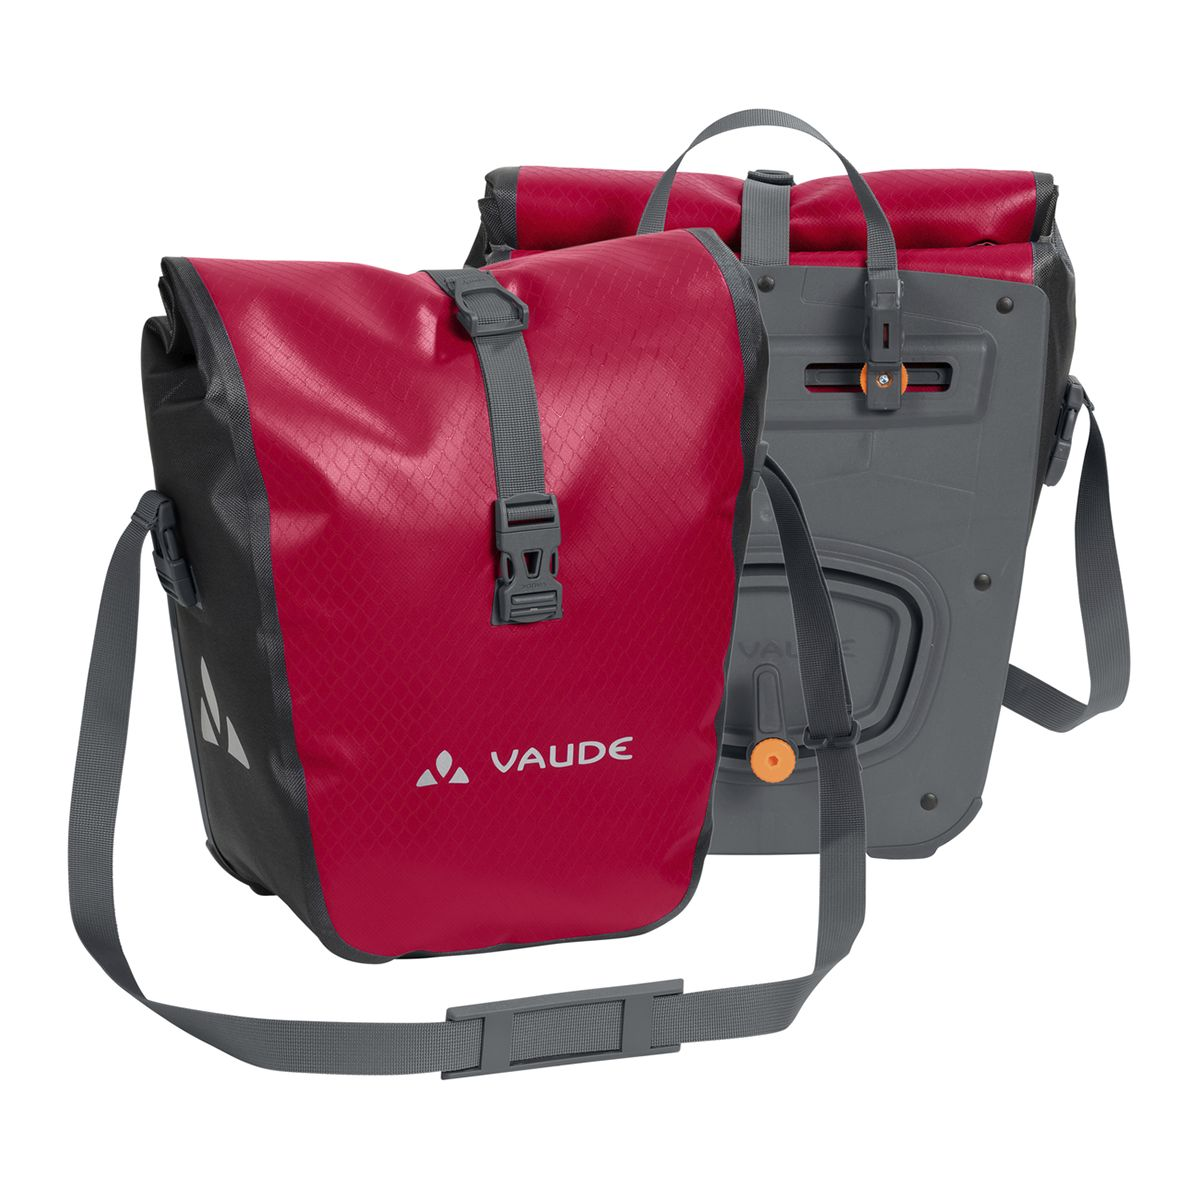 AQUA FRONT II set of two pannier bags